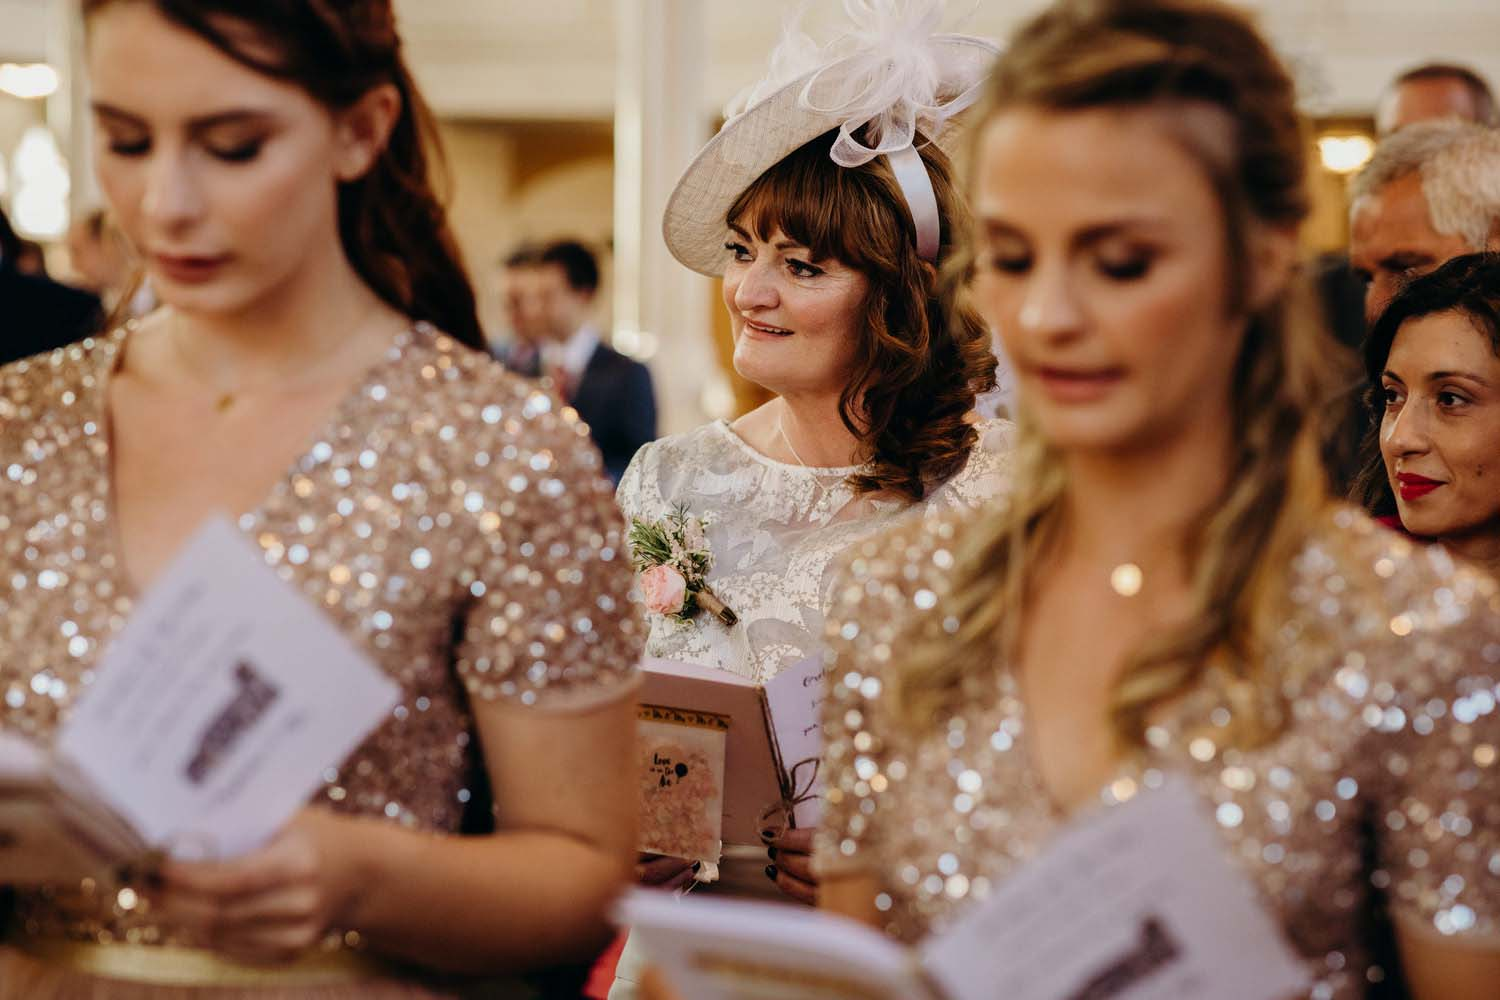 Mother of bride smiling at church wedding